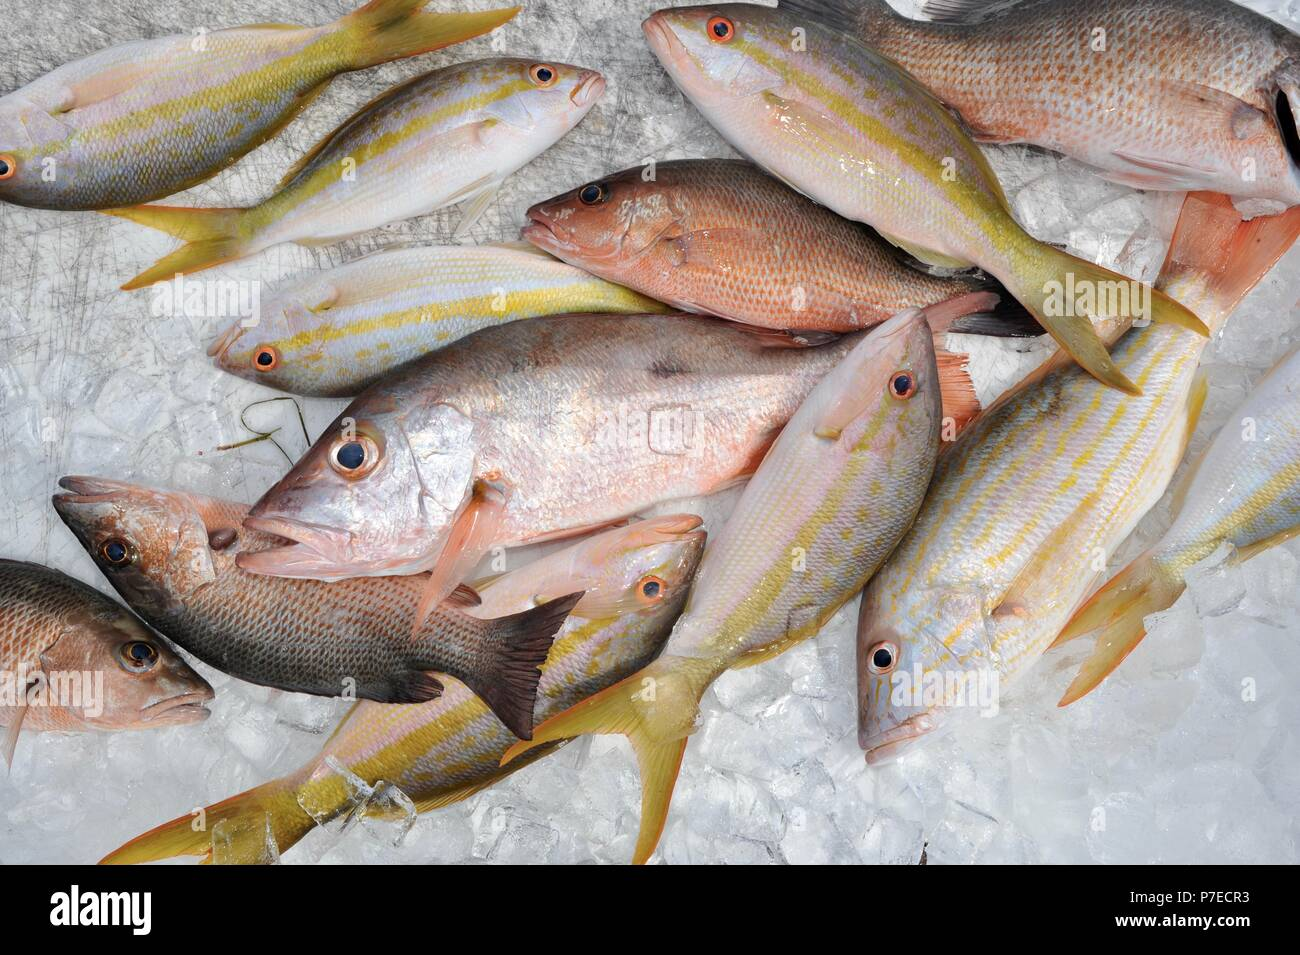 Fresh-caught, saltwater yellow tail and red snapper fish on ice, Marathon Key, Florida, USA Stock Photo